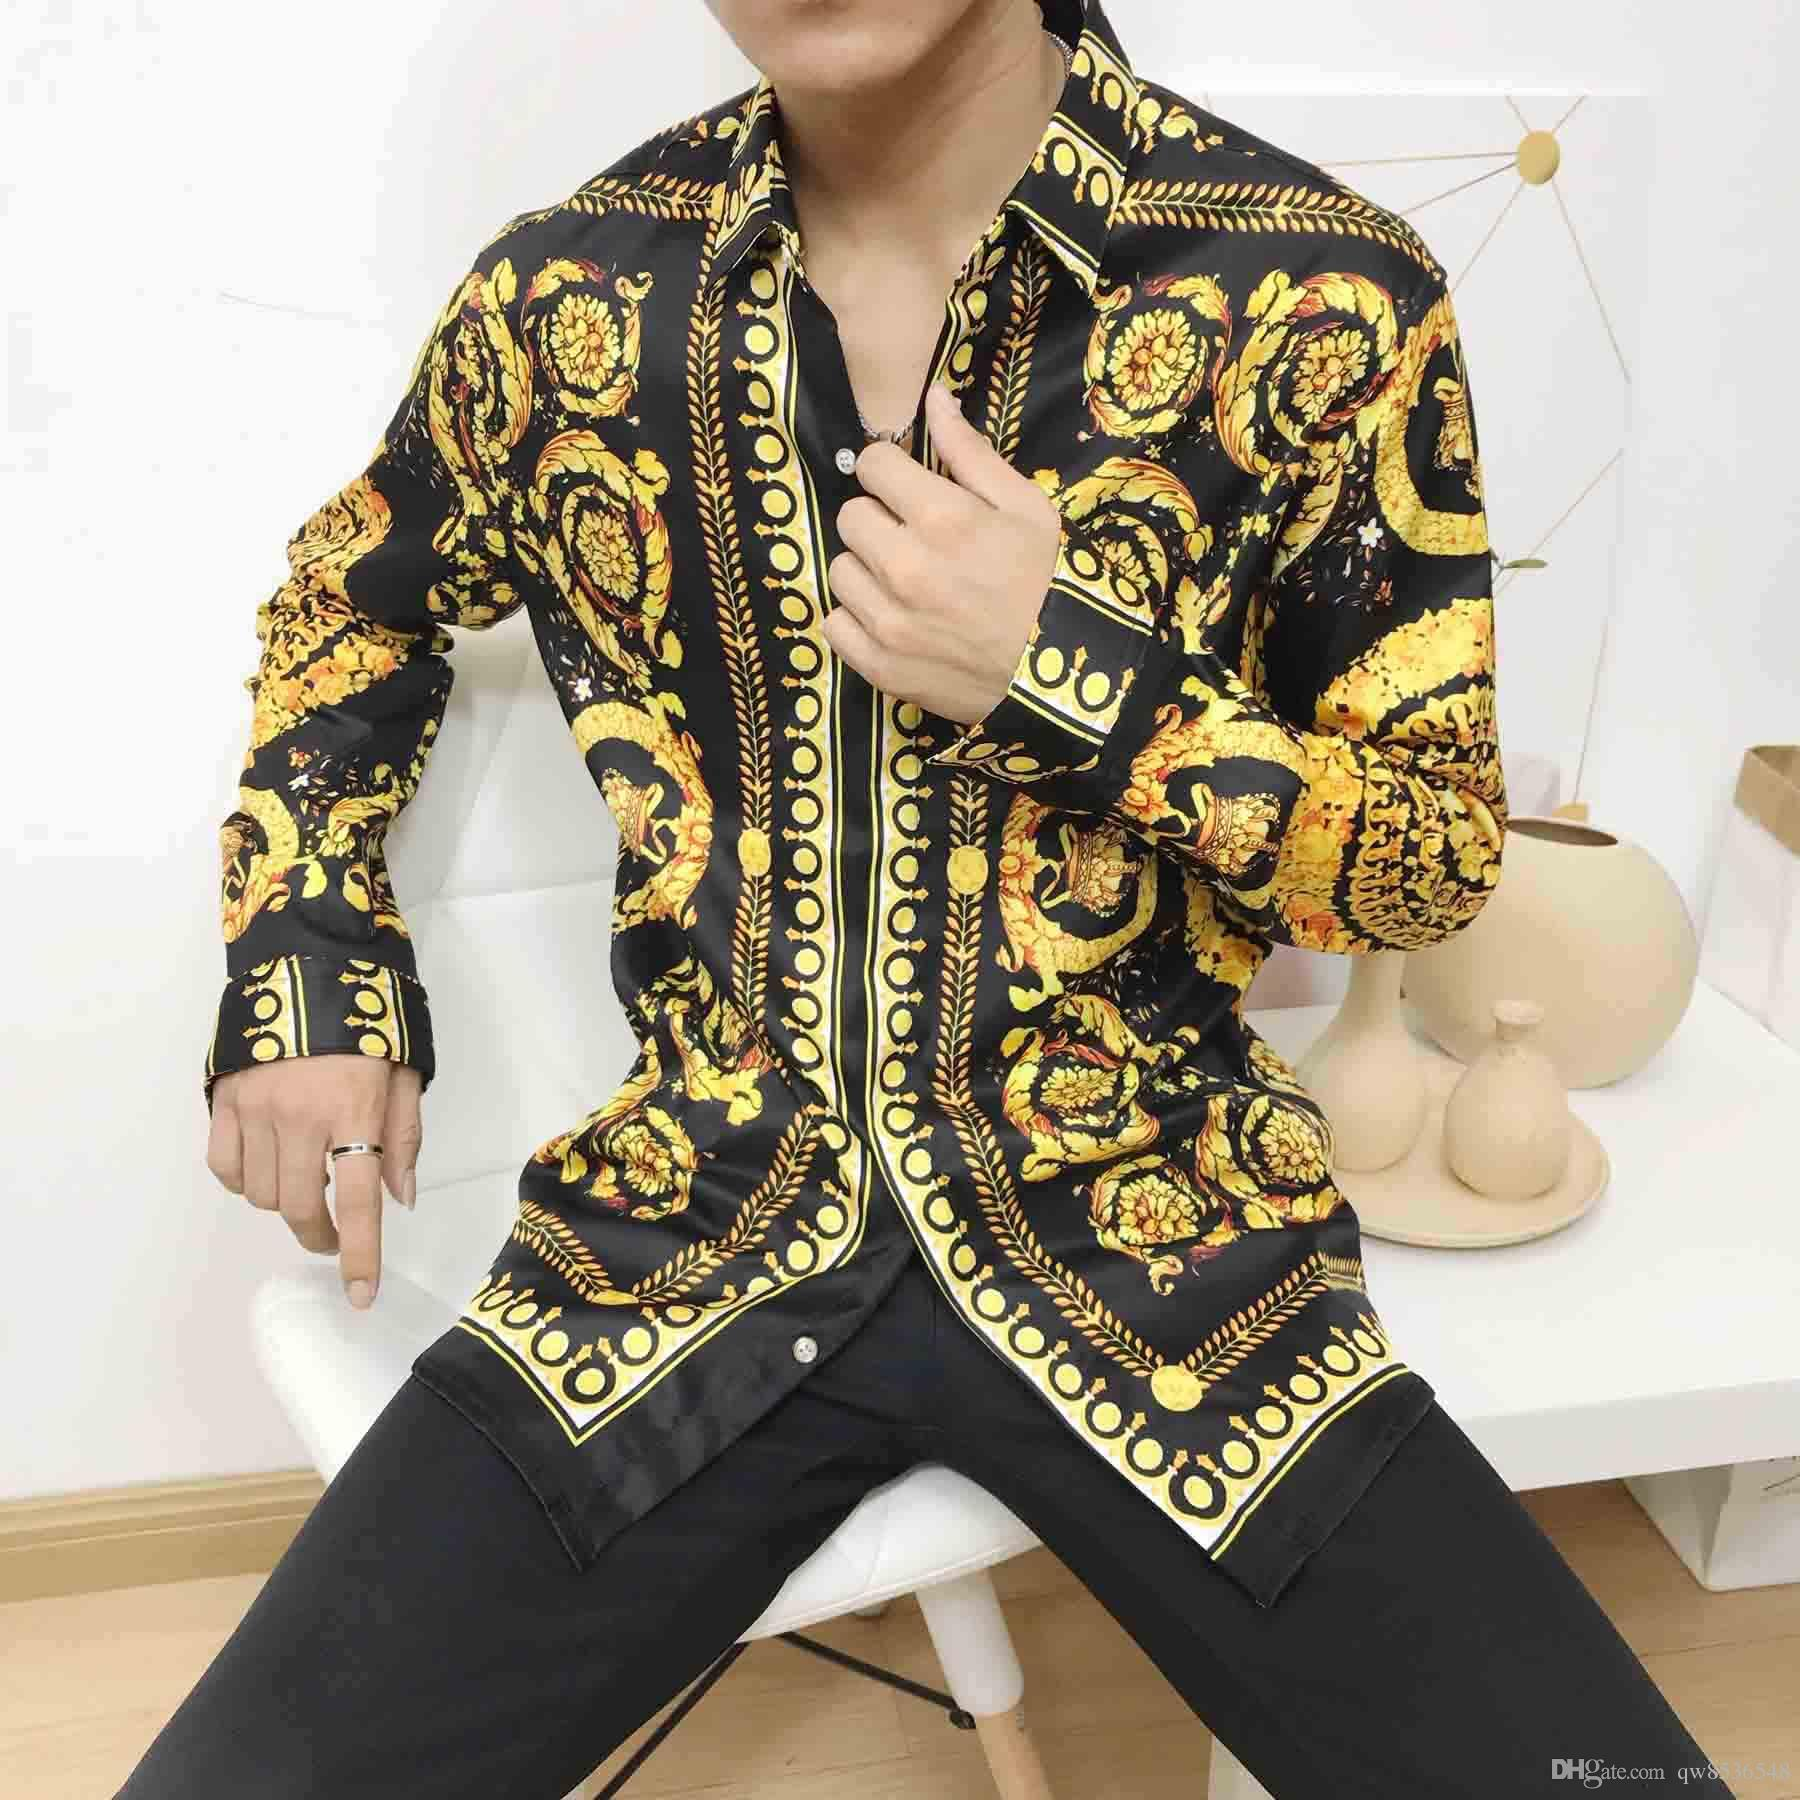 2020 Men's Shirt French Street Fashion Harajuku Casual Shirt Men's Mixed Color Embroidered Medusa Black Golden Leopard Print Leopard